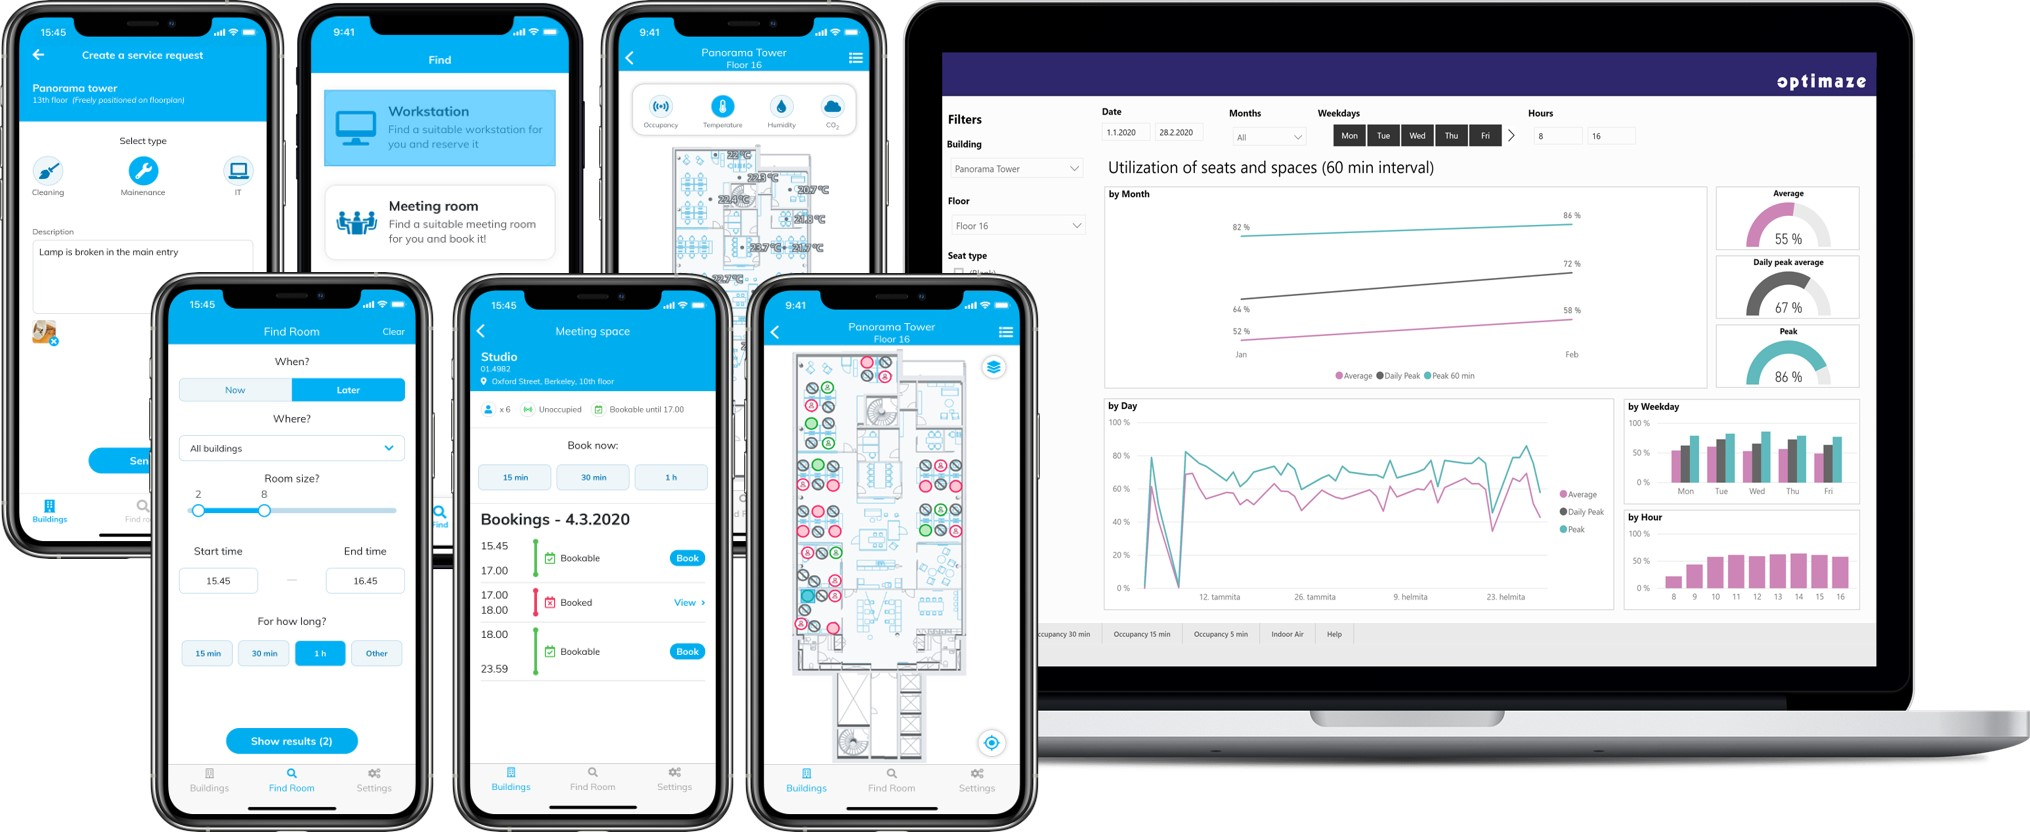 Employees can book workspaces and meeting rooms in their own mobile app, the workplace professionals collect data and optimze workspace usage.